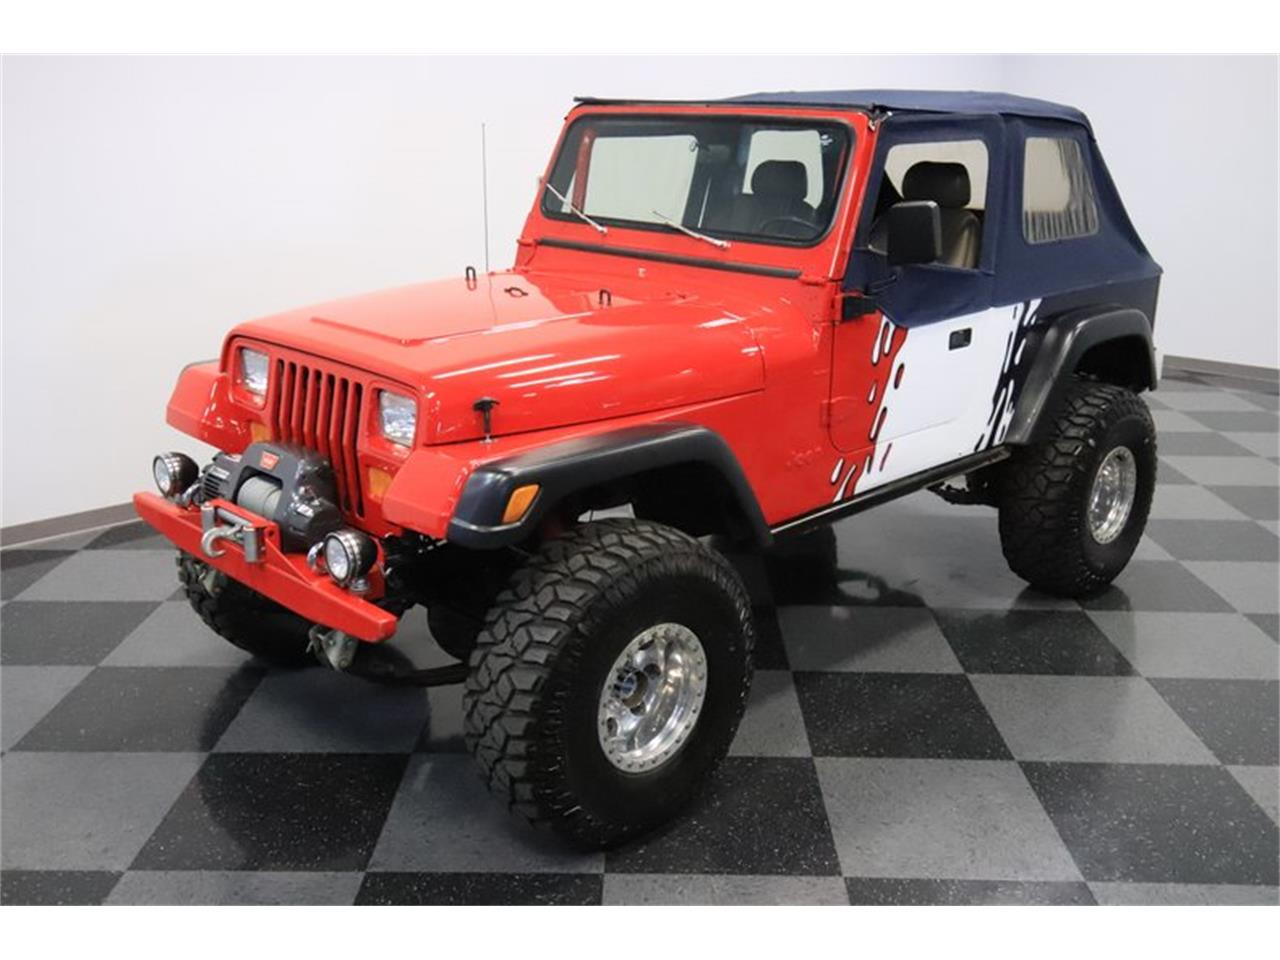 1983 Jeep CJ8 Scrambler for sale in Mesa, AZ – photo 21